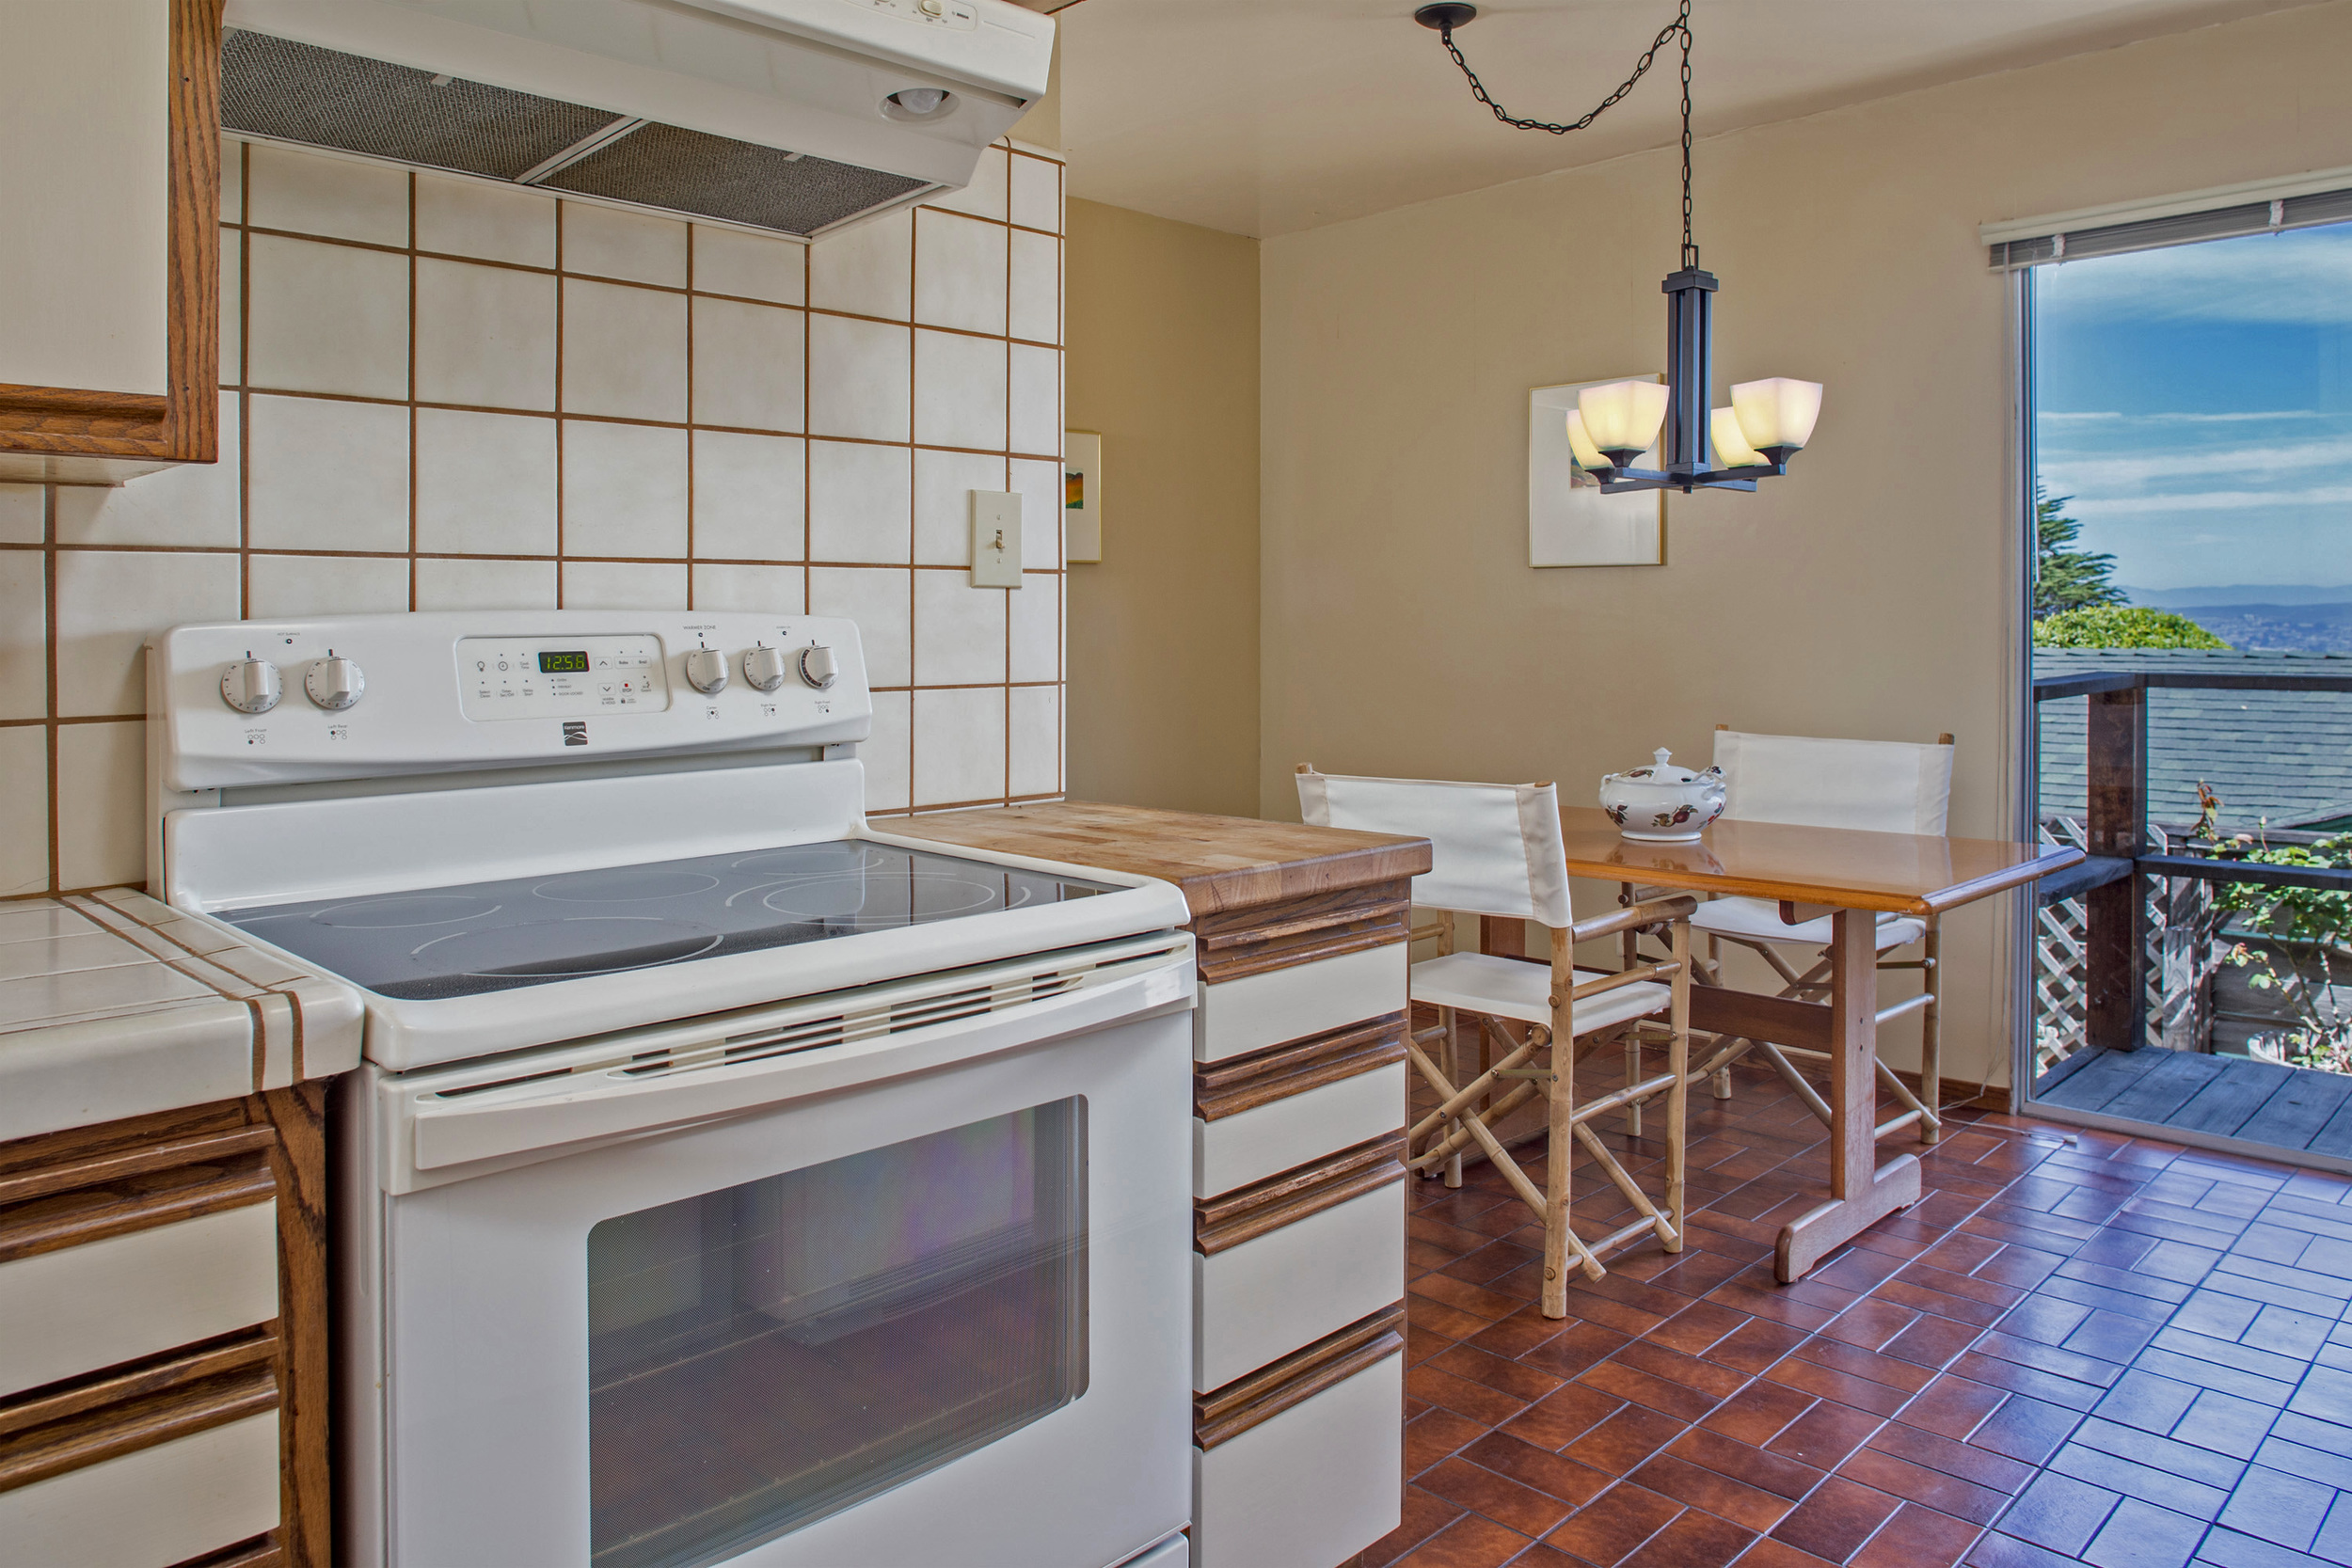 7-kitchen with eating area.jpg